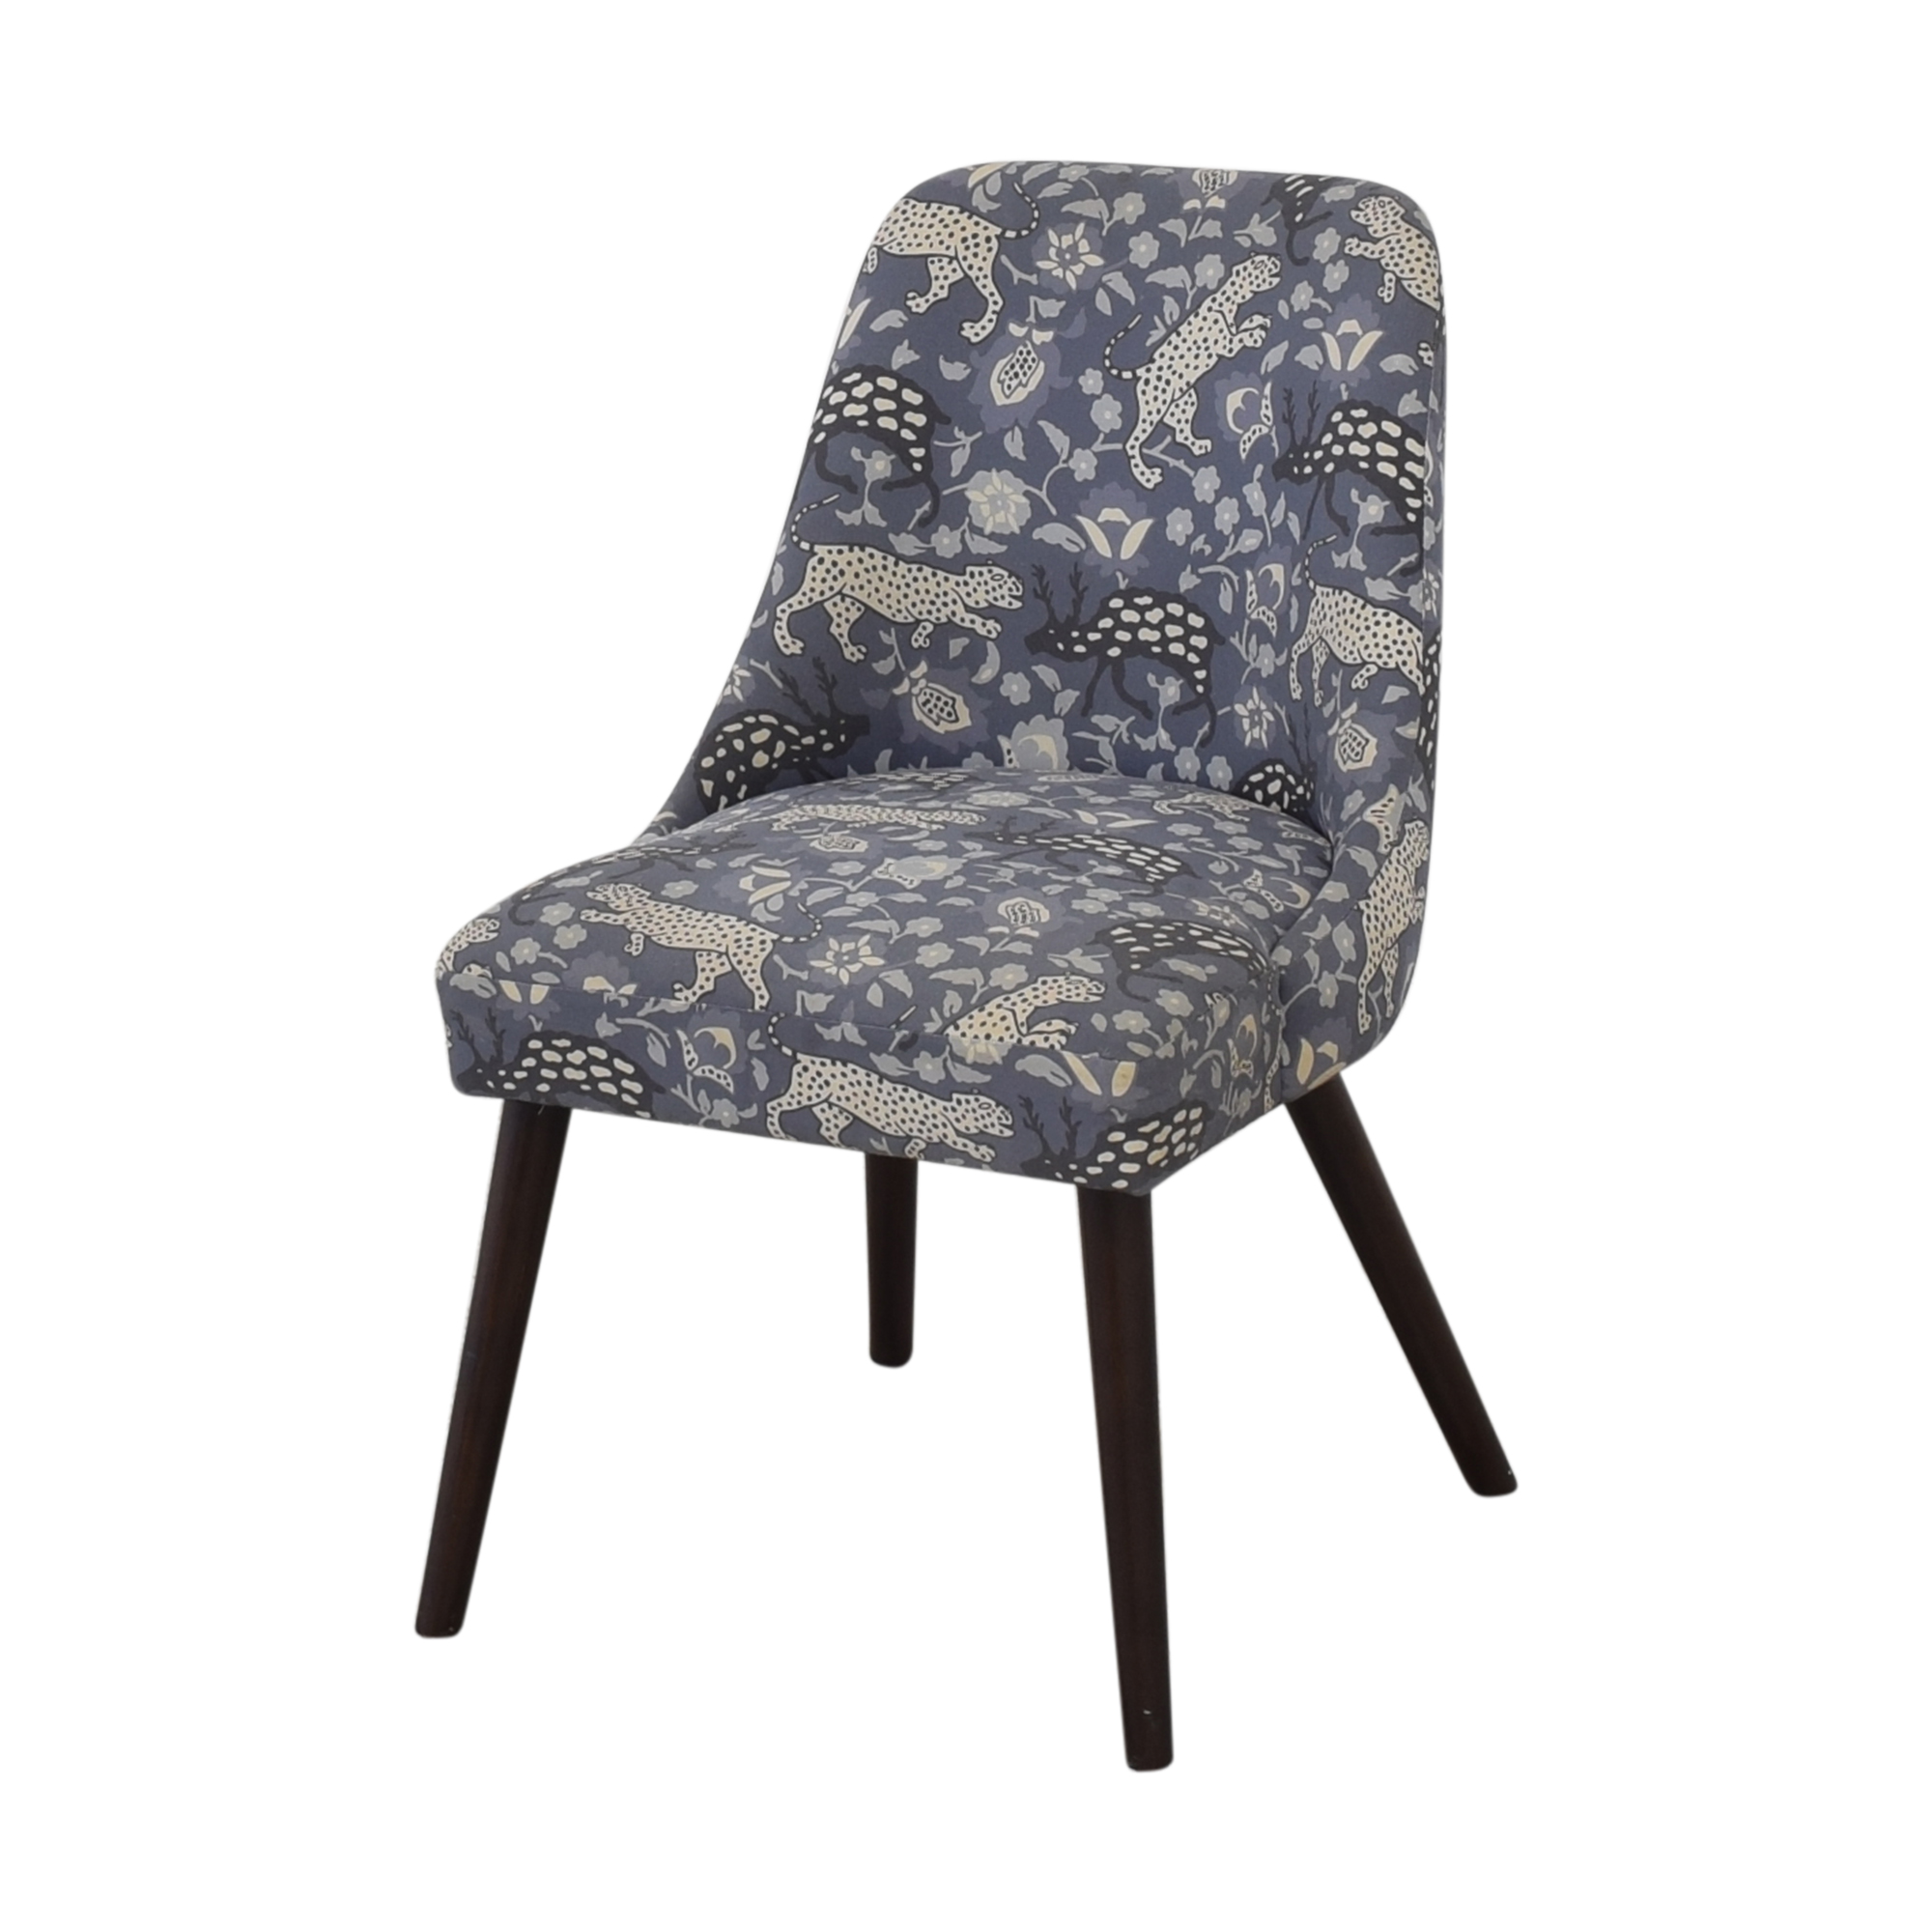 Skyline Furniture Skyline Patterned Upholstered Dining Chair used